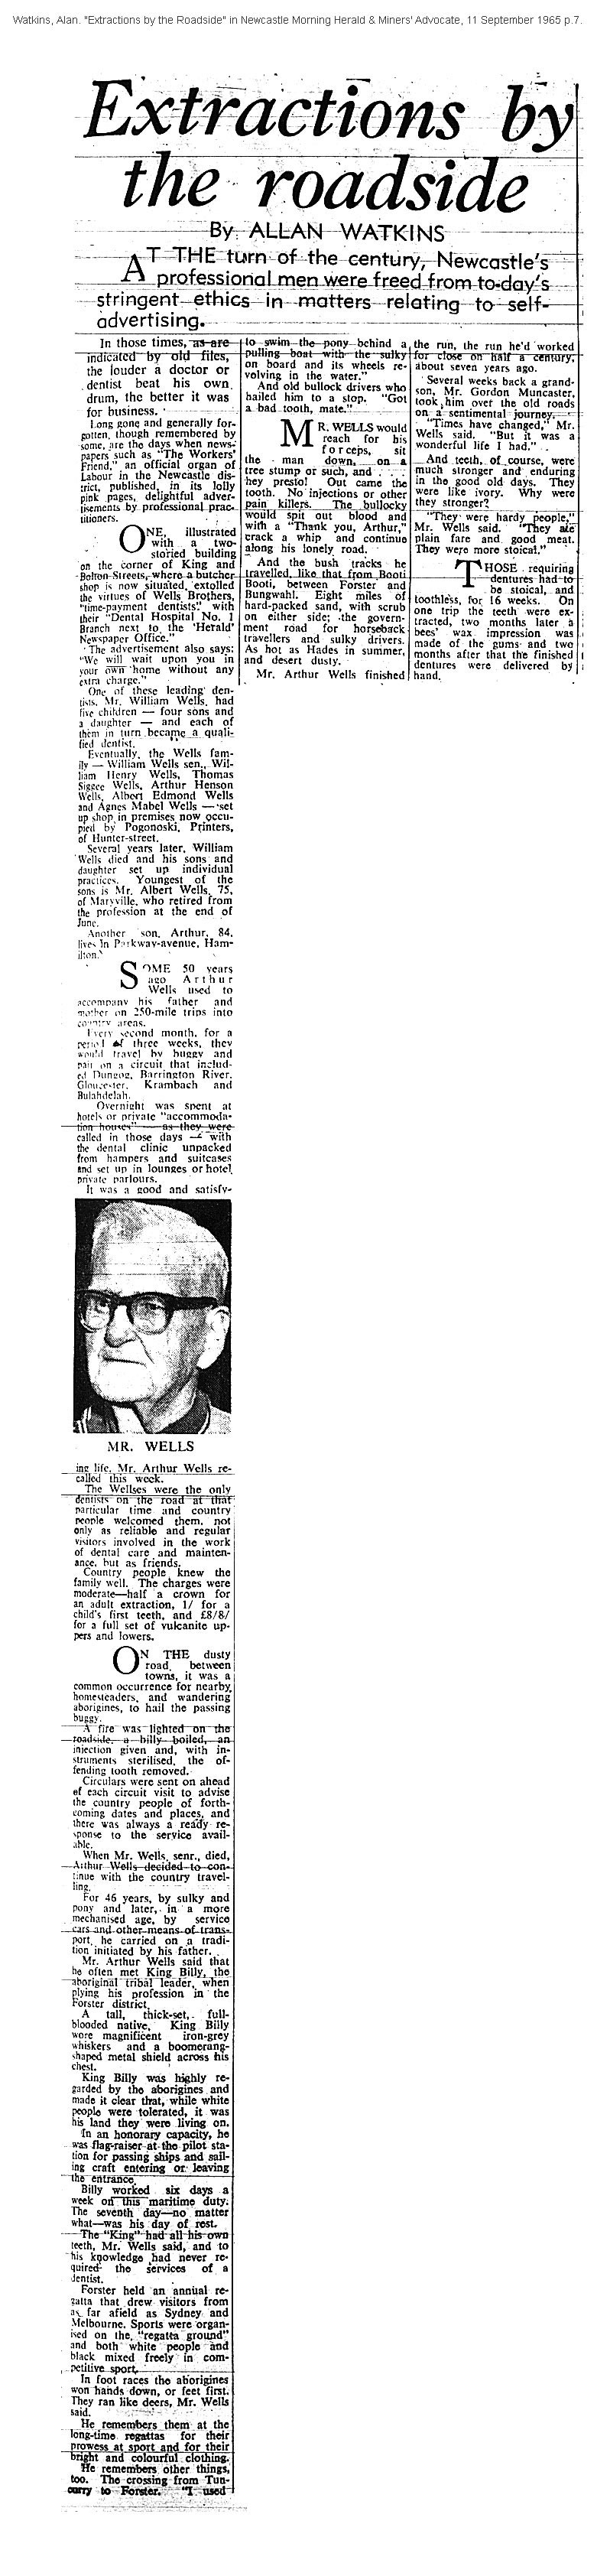 """Alan Watkins """"Extractions by the roadside"""" NMHMA 11 September 1965 p.7"""